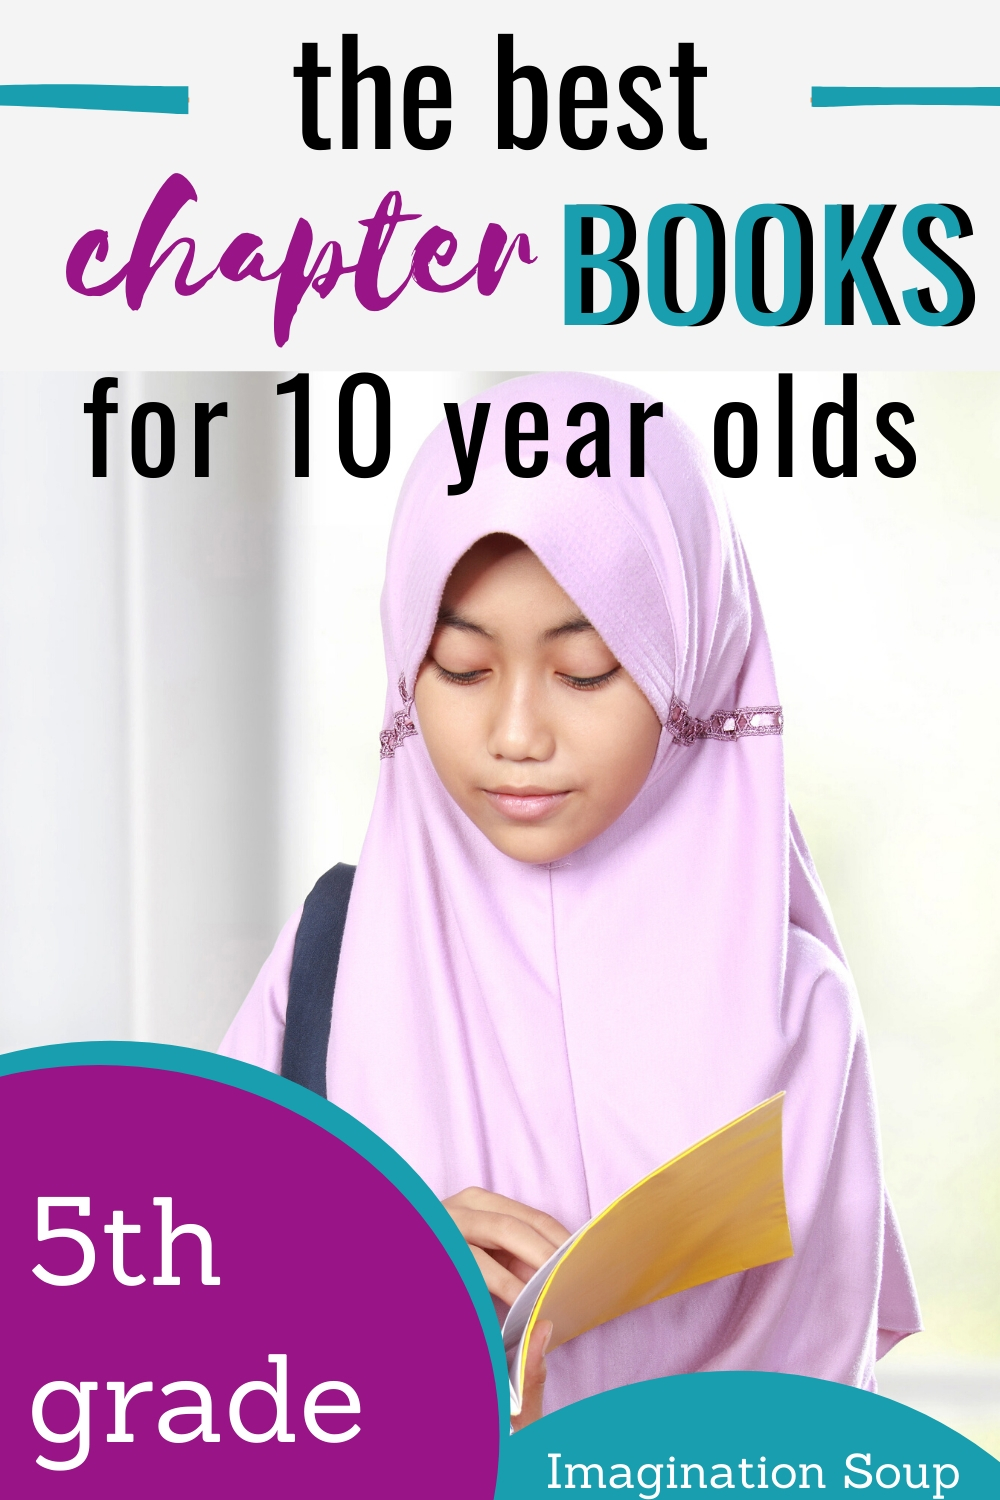 Best Books for 12 Year Olds 12th Grade   Imagination Soup   12 ...